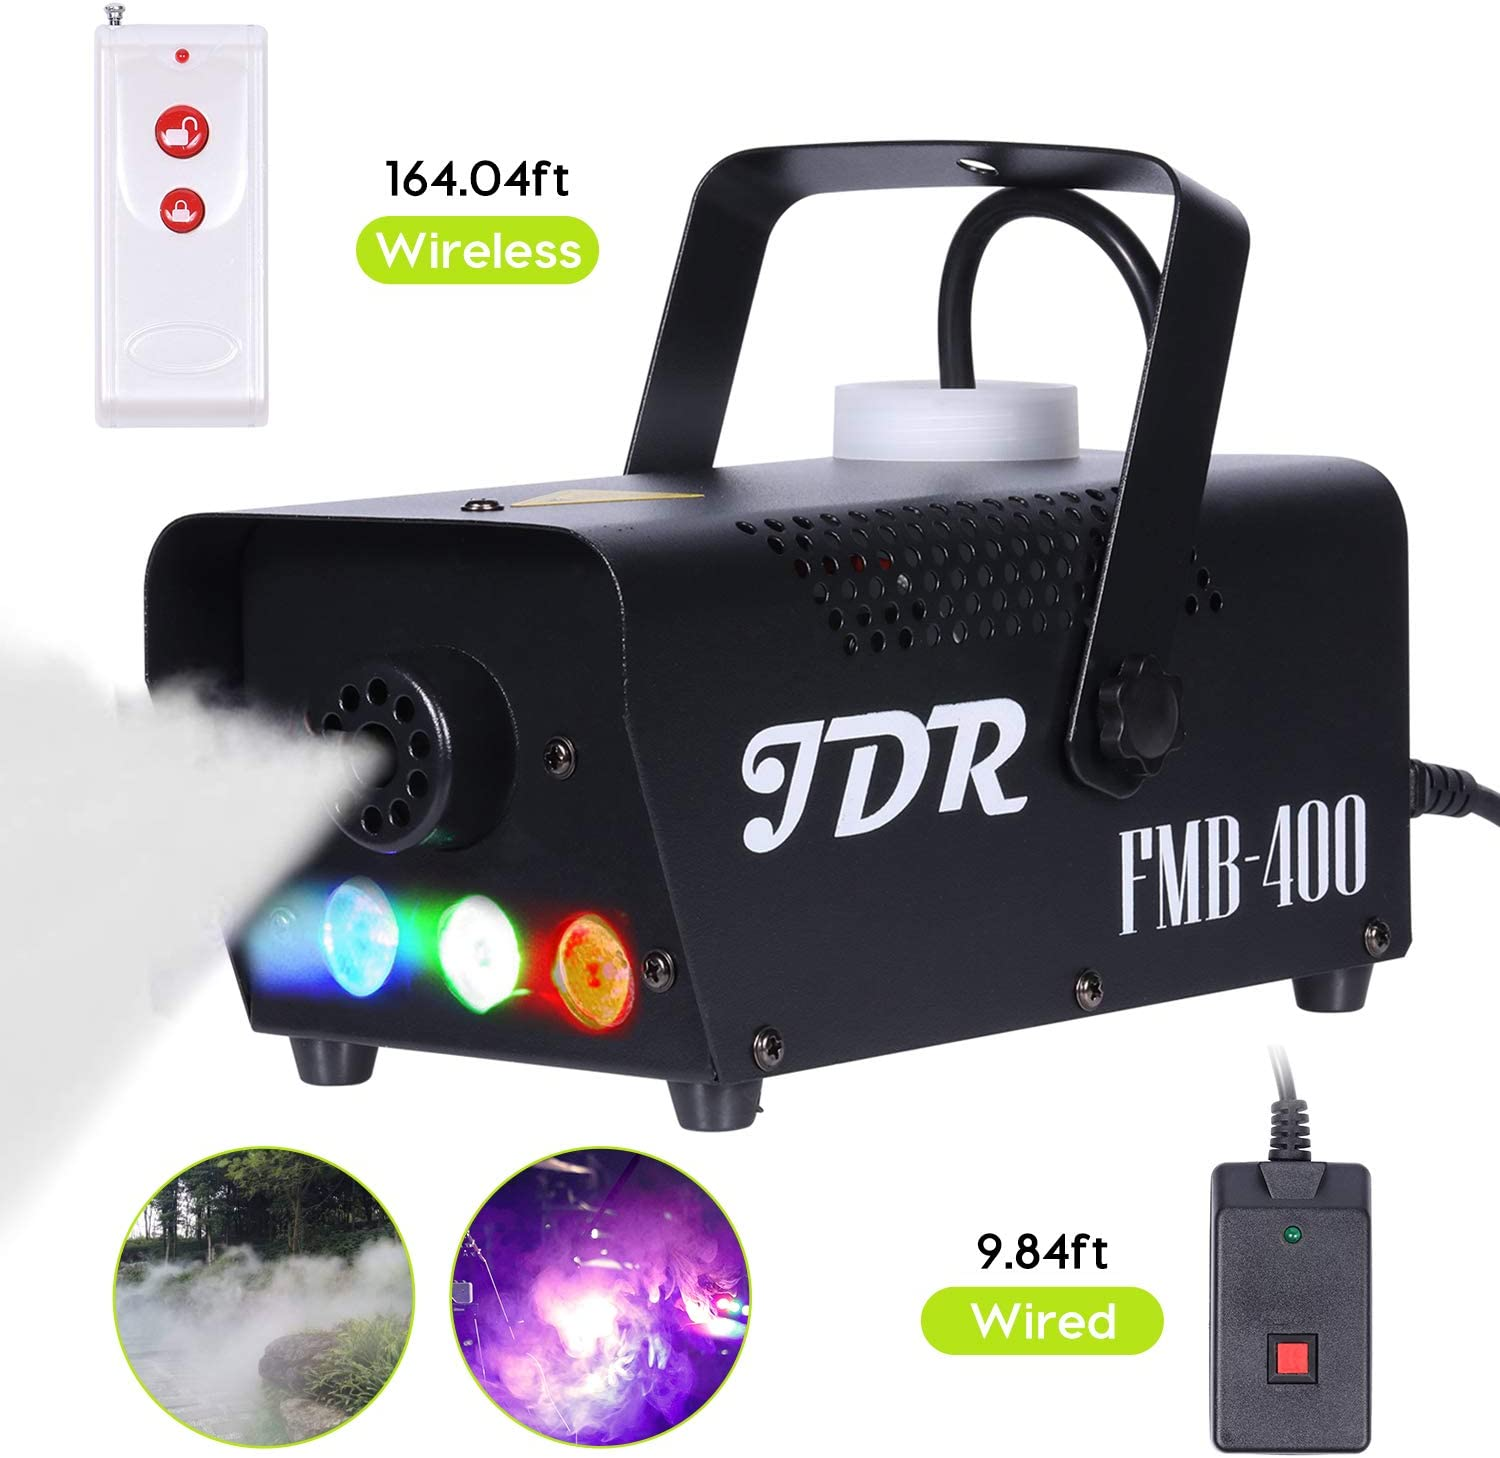 JDR Fog Machine with Controllable lights, Disinfection LED Smoke Machine